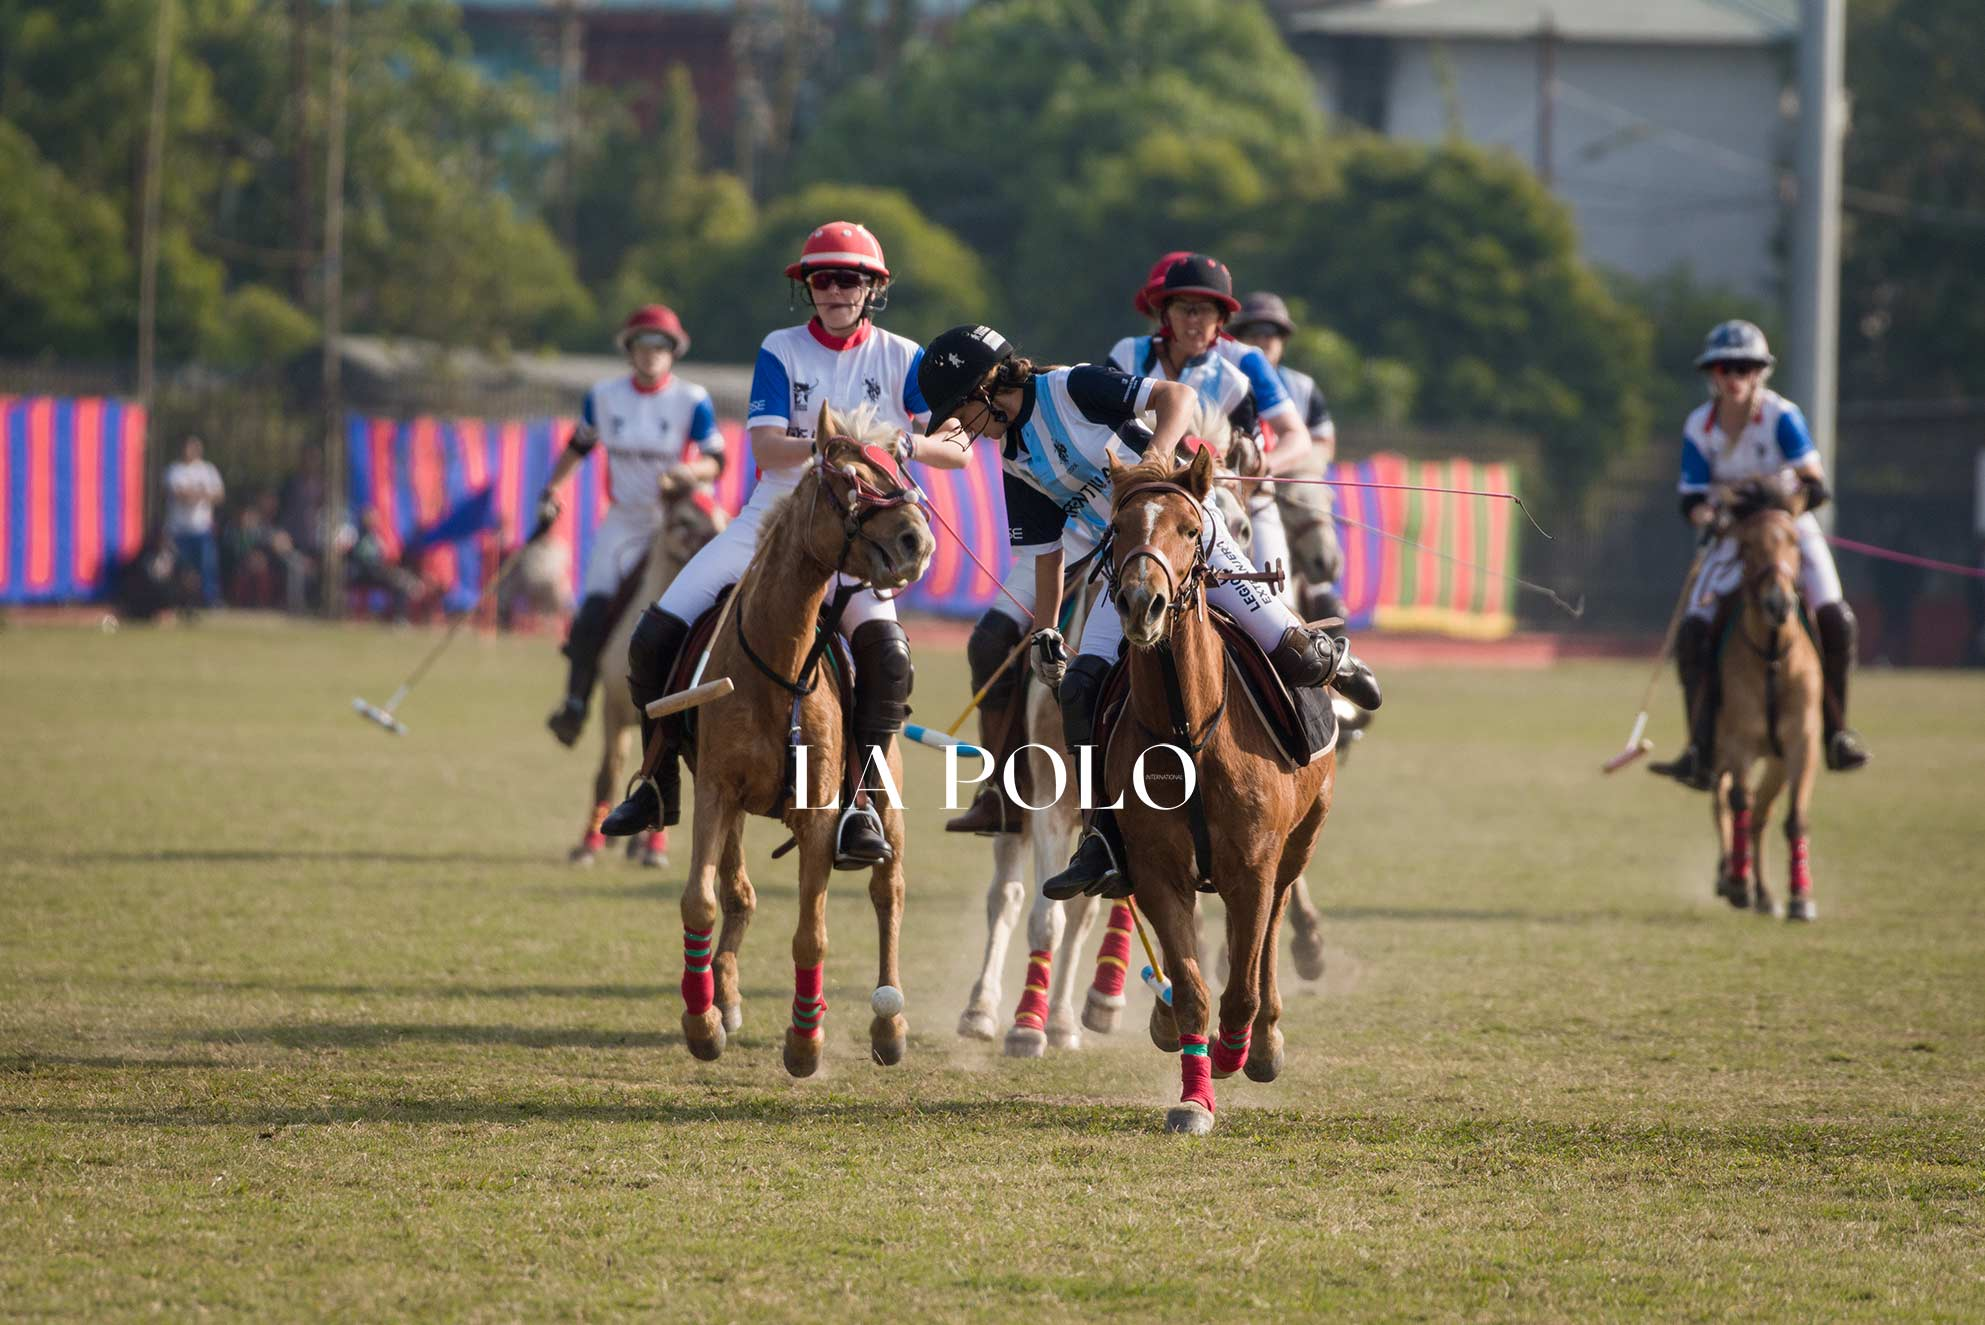 female-polo-player-polo-in-manipur-india-lapolo